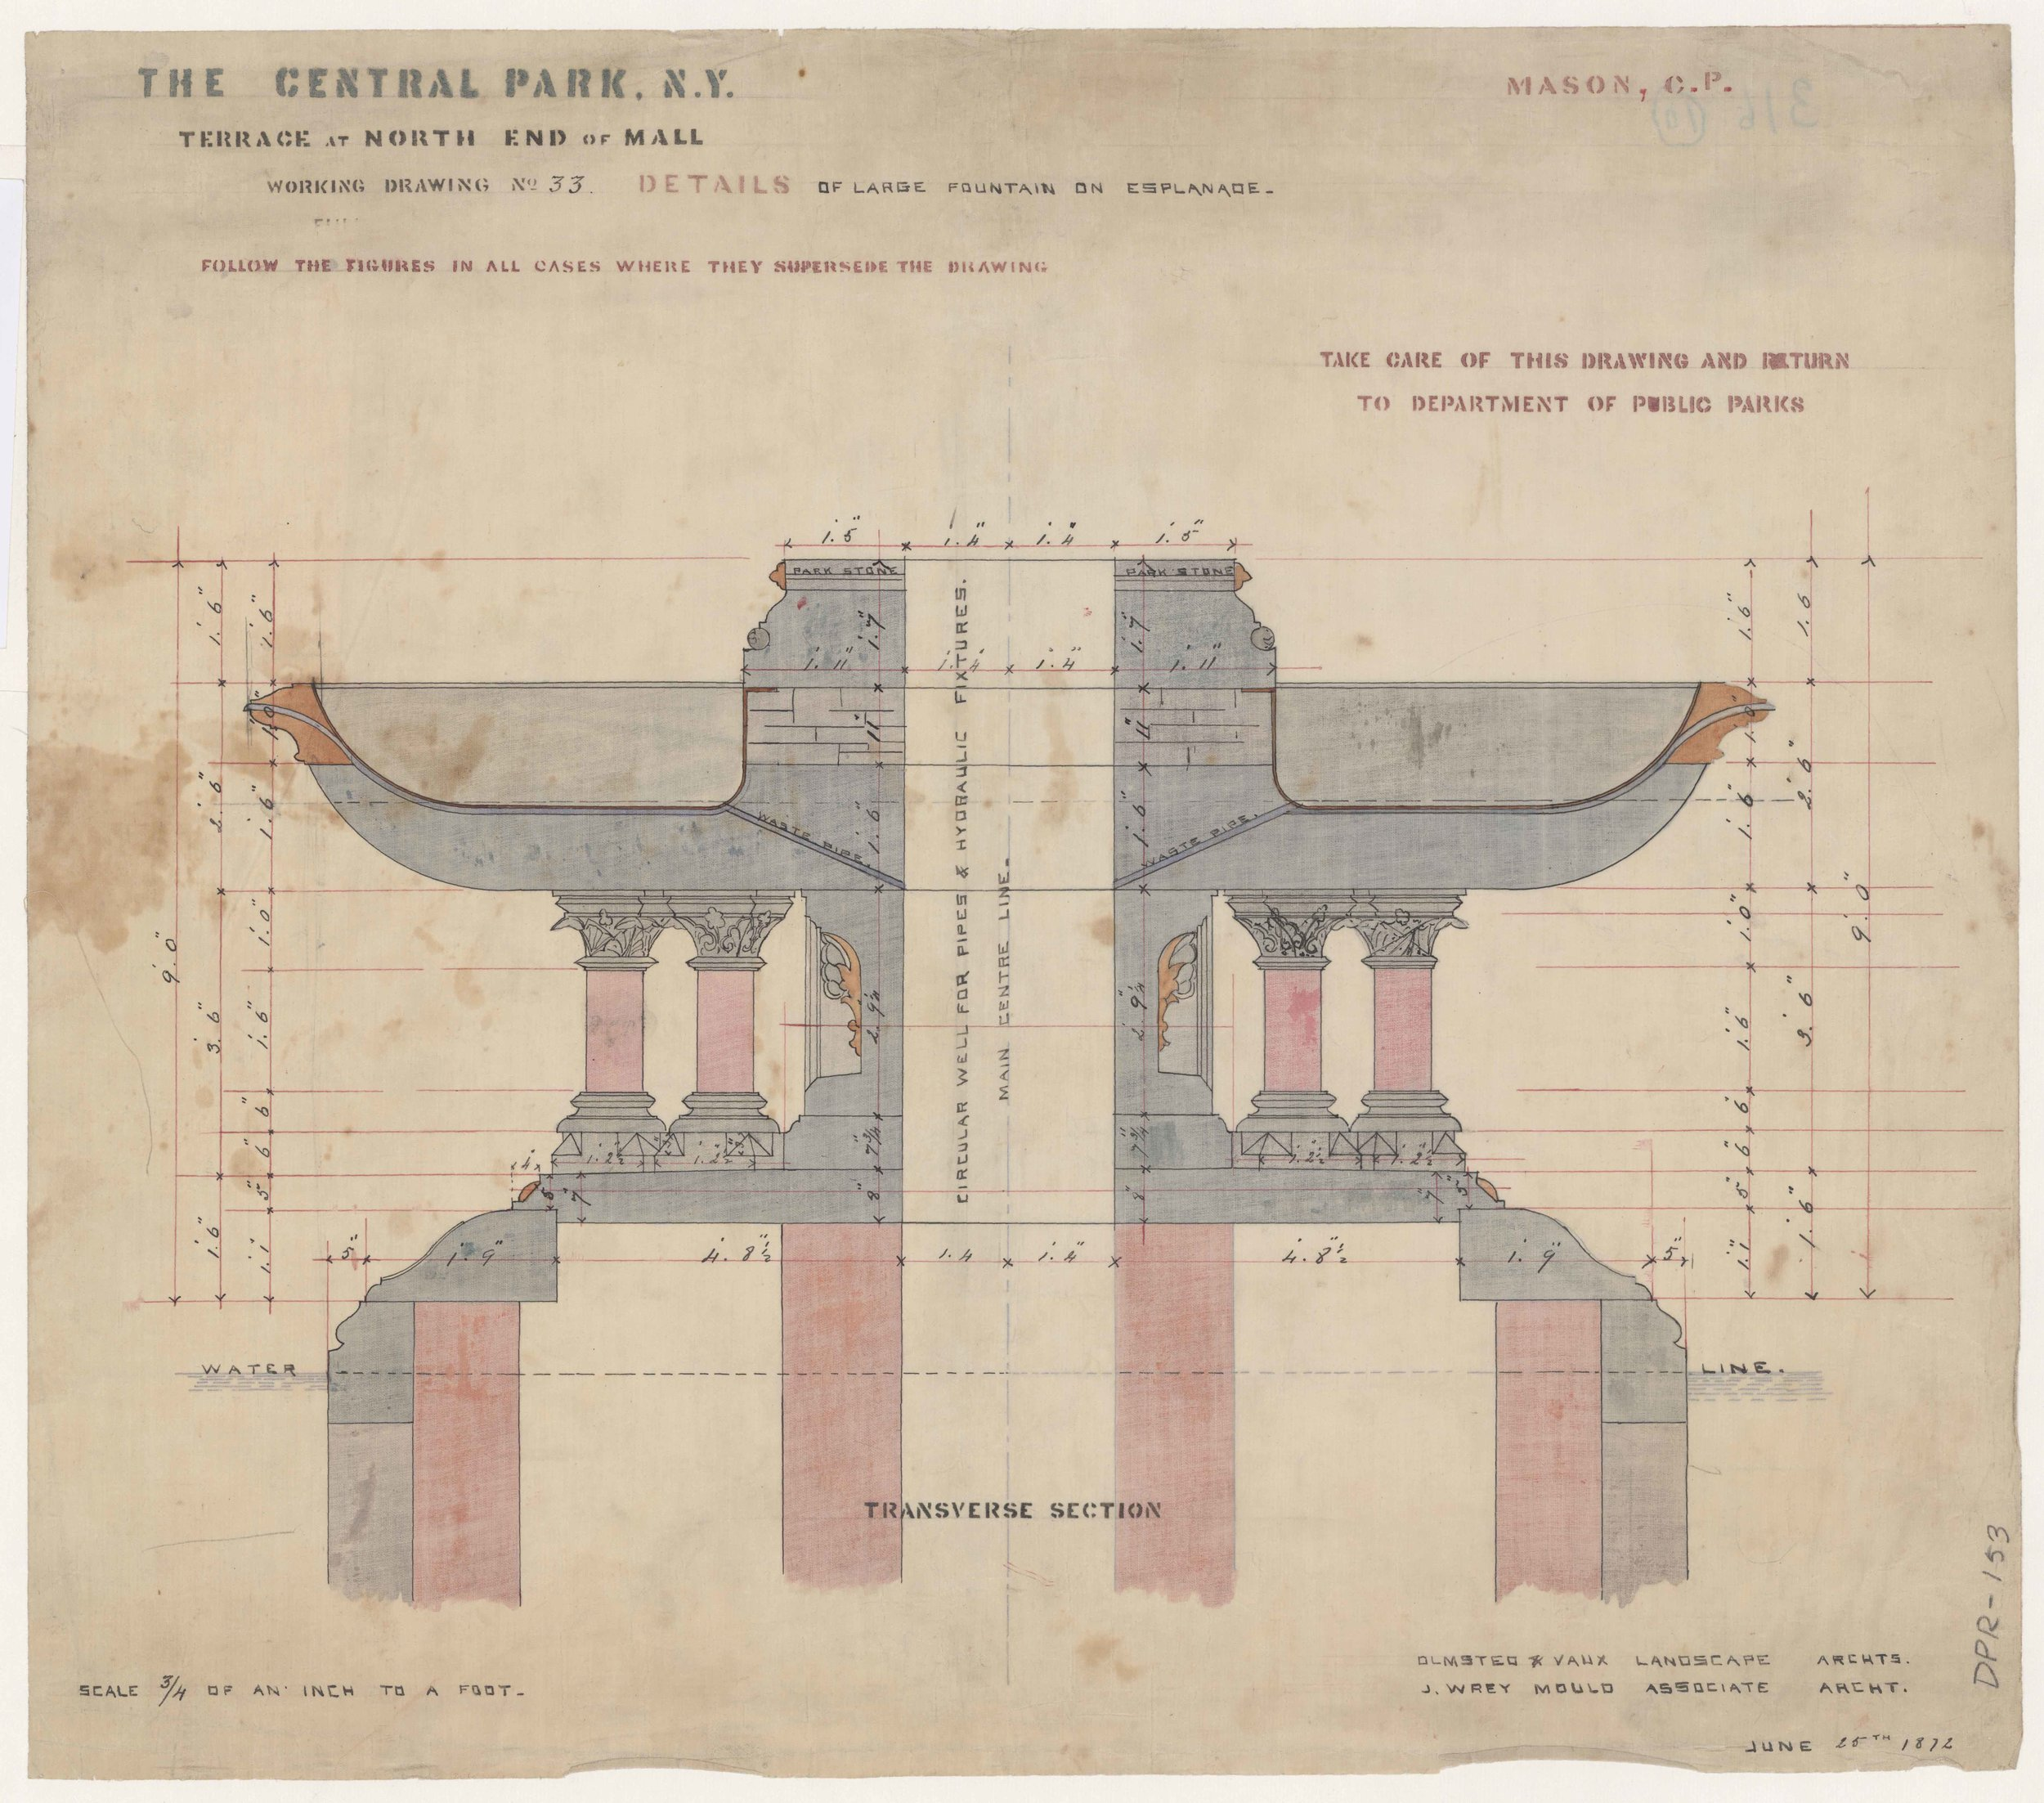 Jacob Wrey Mould, Central Park drawing, 1872. Fountains for Bethesda Terrace and Mall: Terrace at North End of Mall: Details of Large Fountain on Esplanade: Mason. Department of Parks and Recreation collection, New York City Municipal Archives.